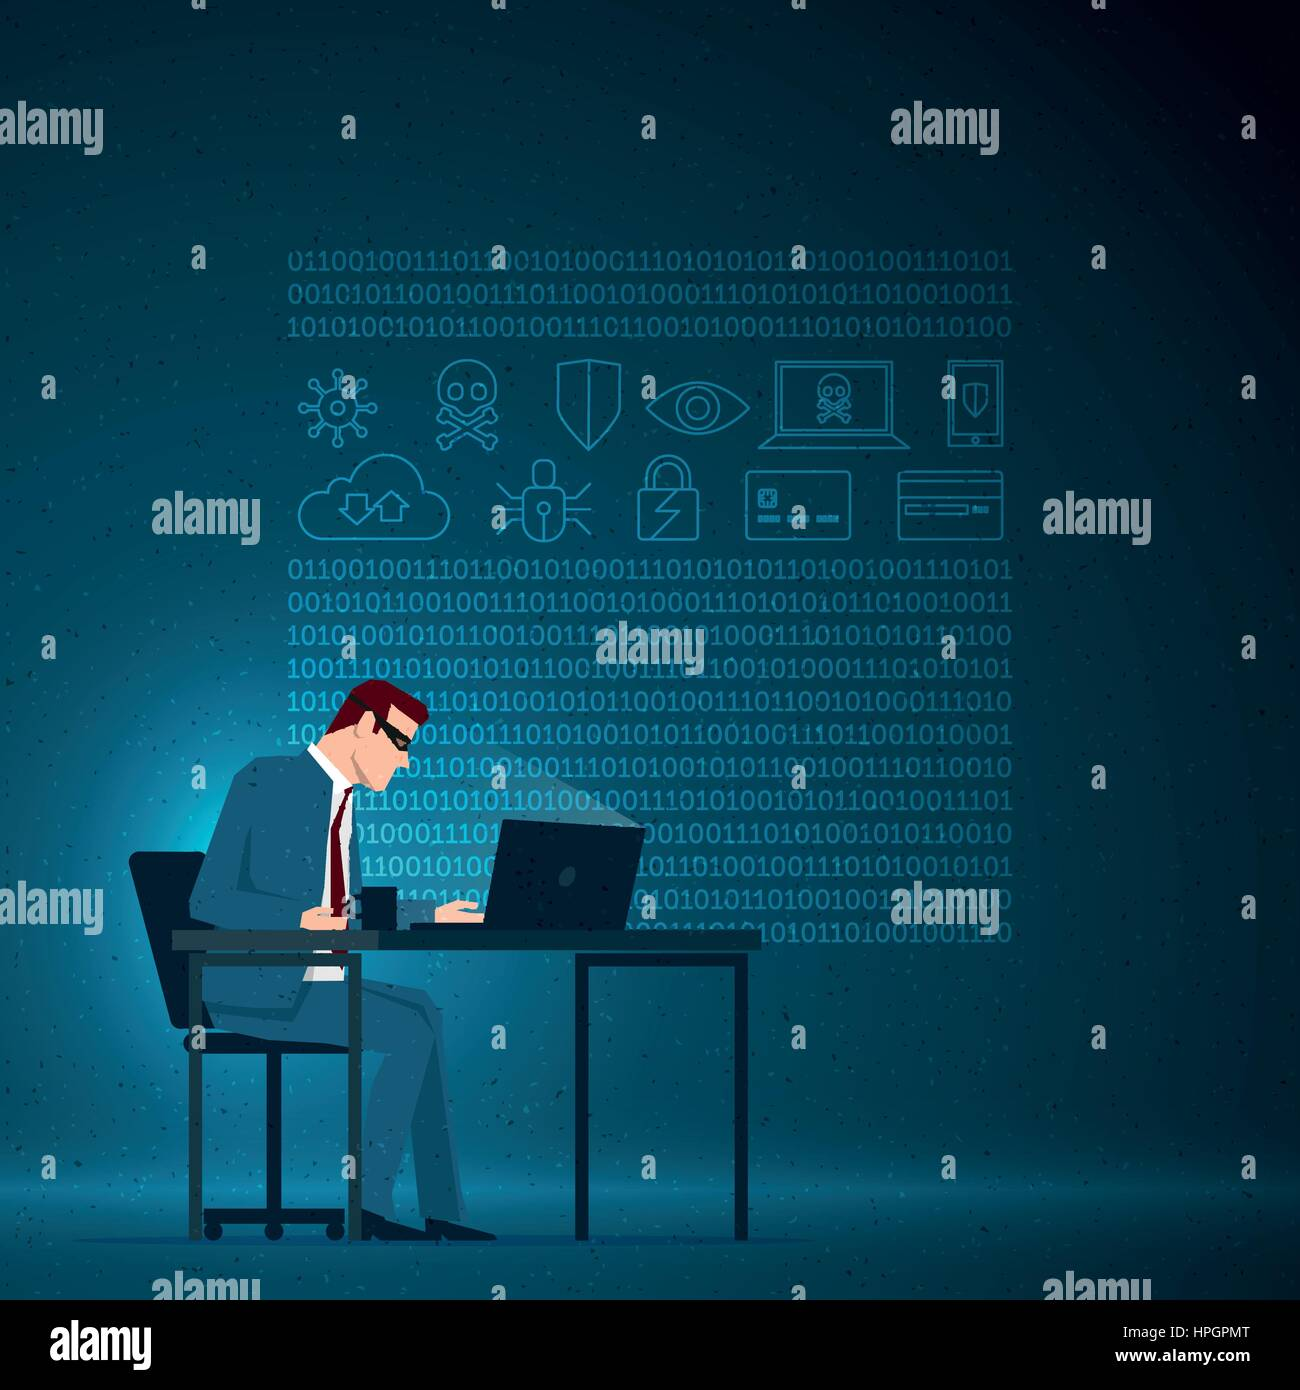 Business concept illustration. Corporate cyber crimes concept. The masked businessman is working with the computer. Stock Vector